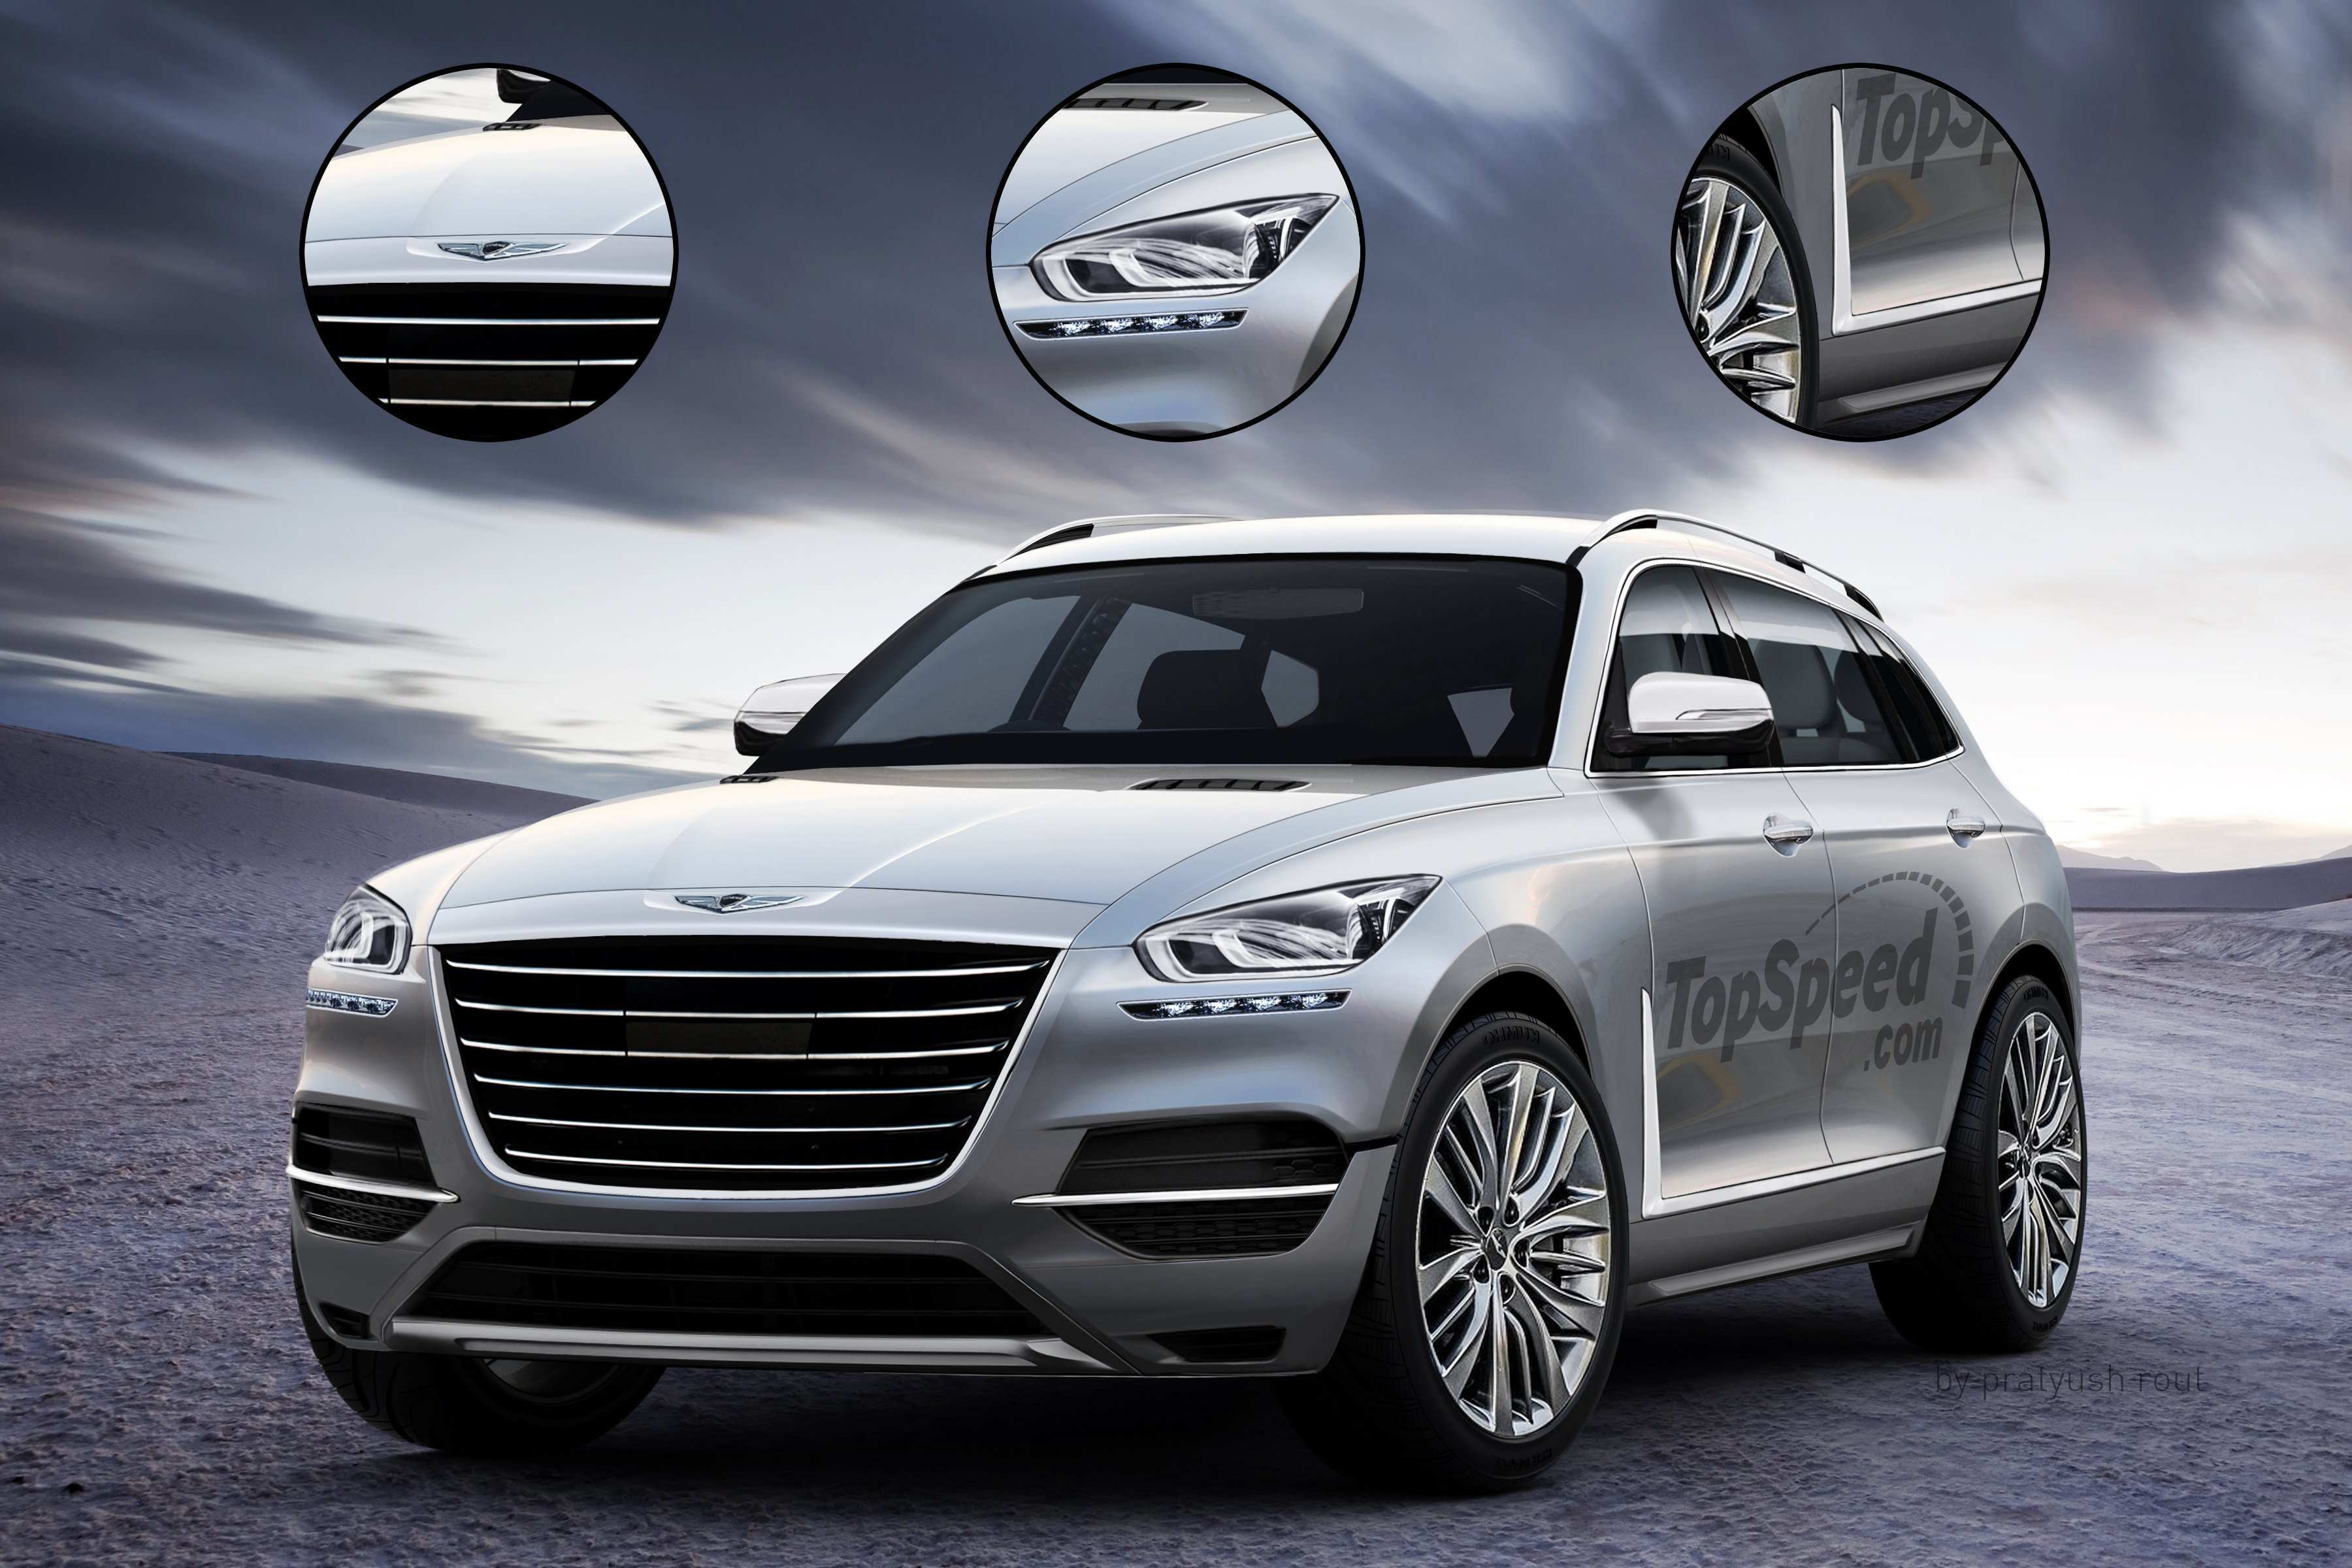 38 All New 2019 Genesis Suv Images